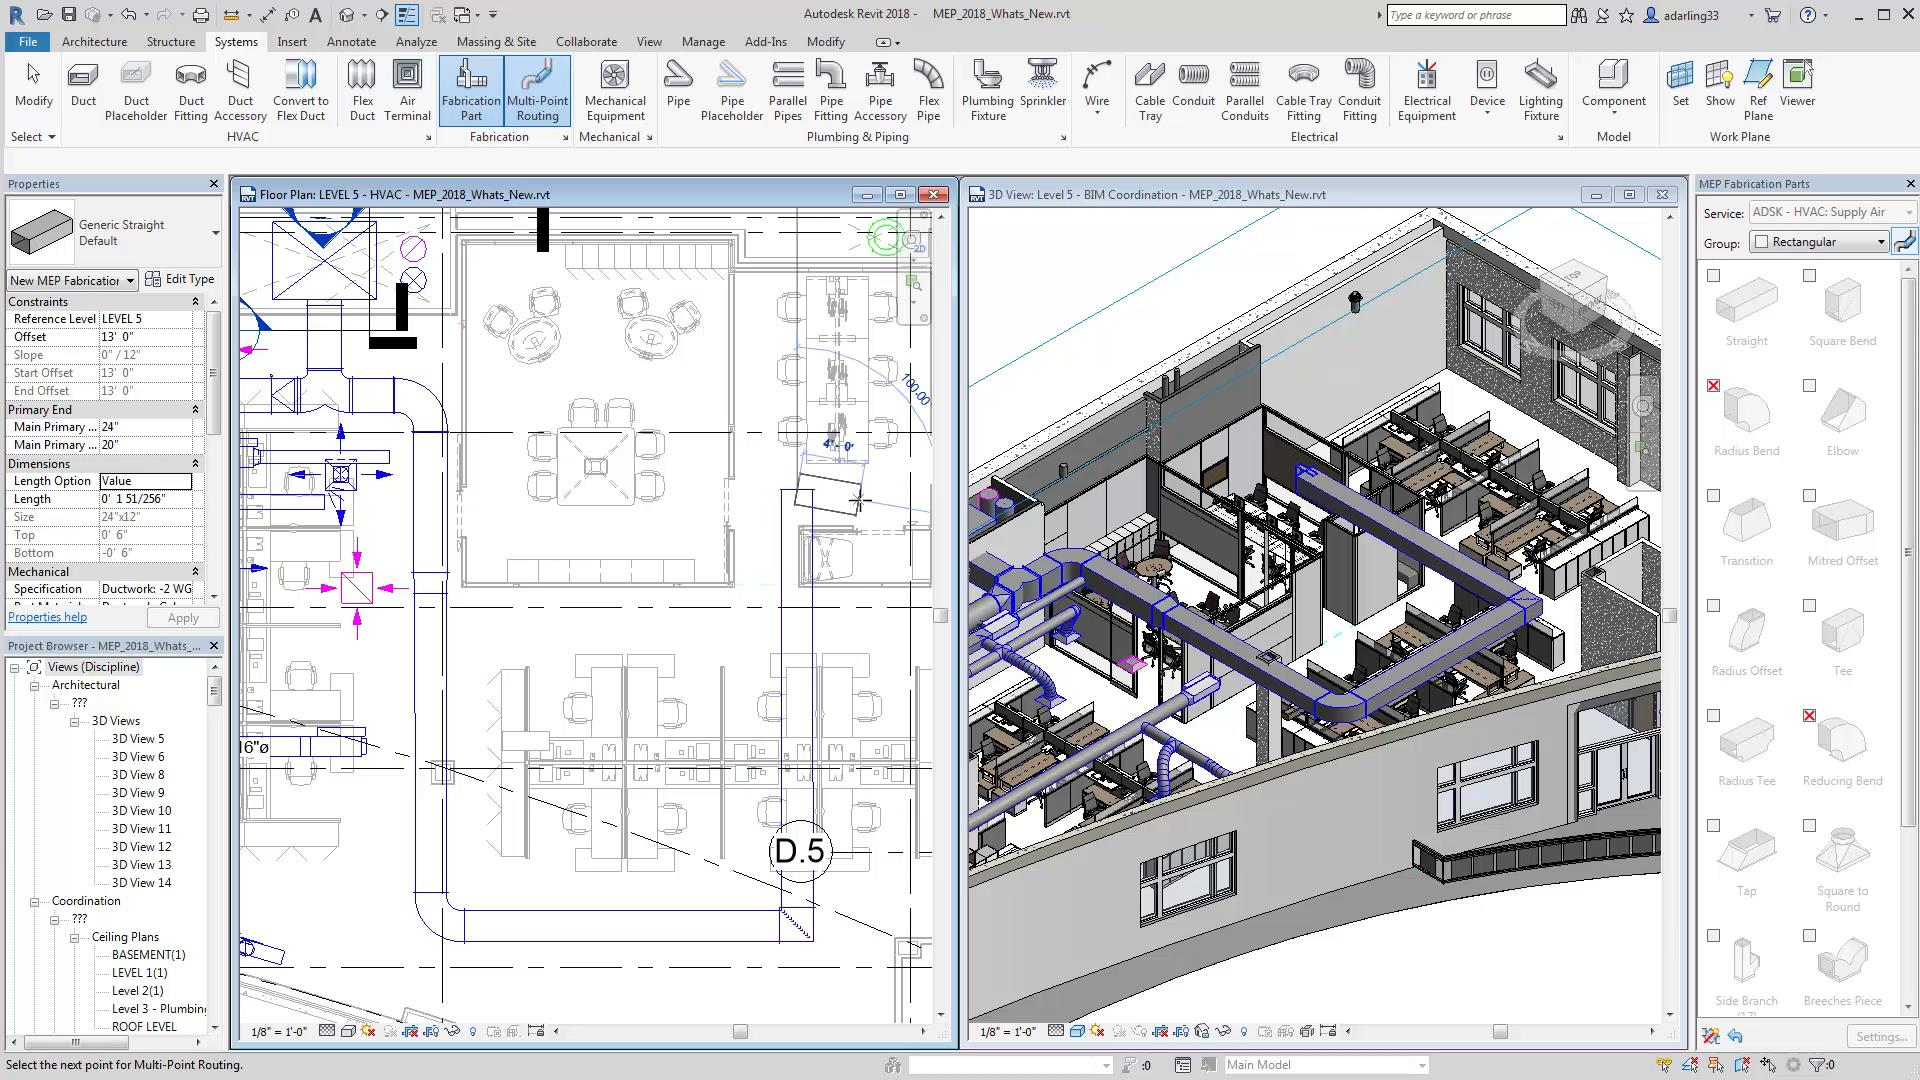 Designers can draw and model different components in 2D or 3D enabling them to see their designs in real time.